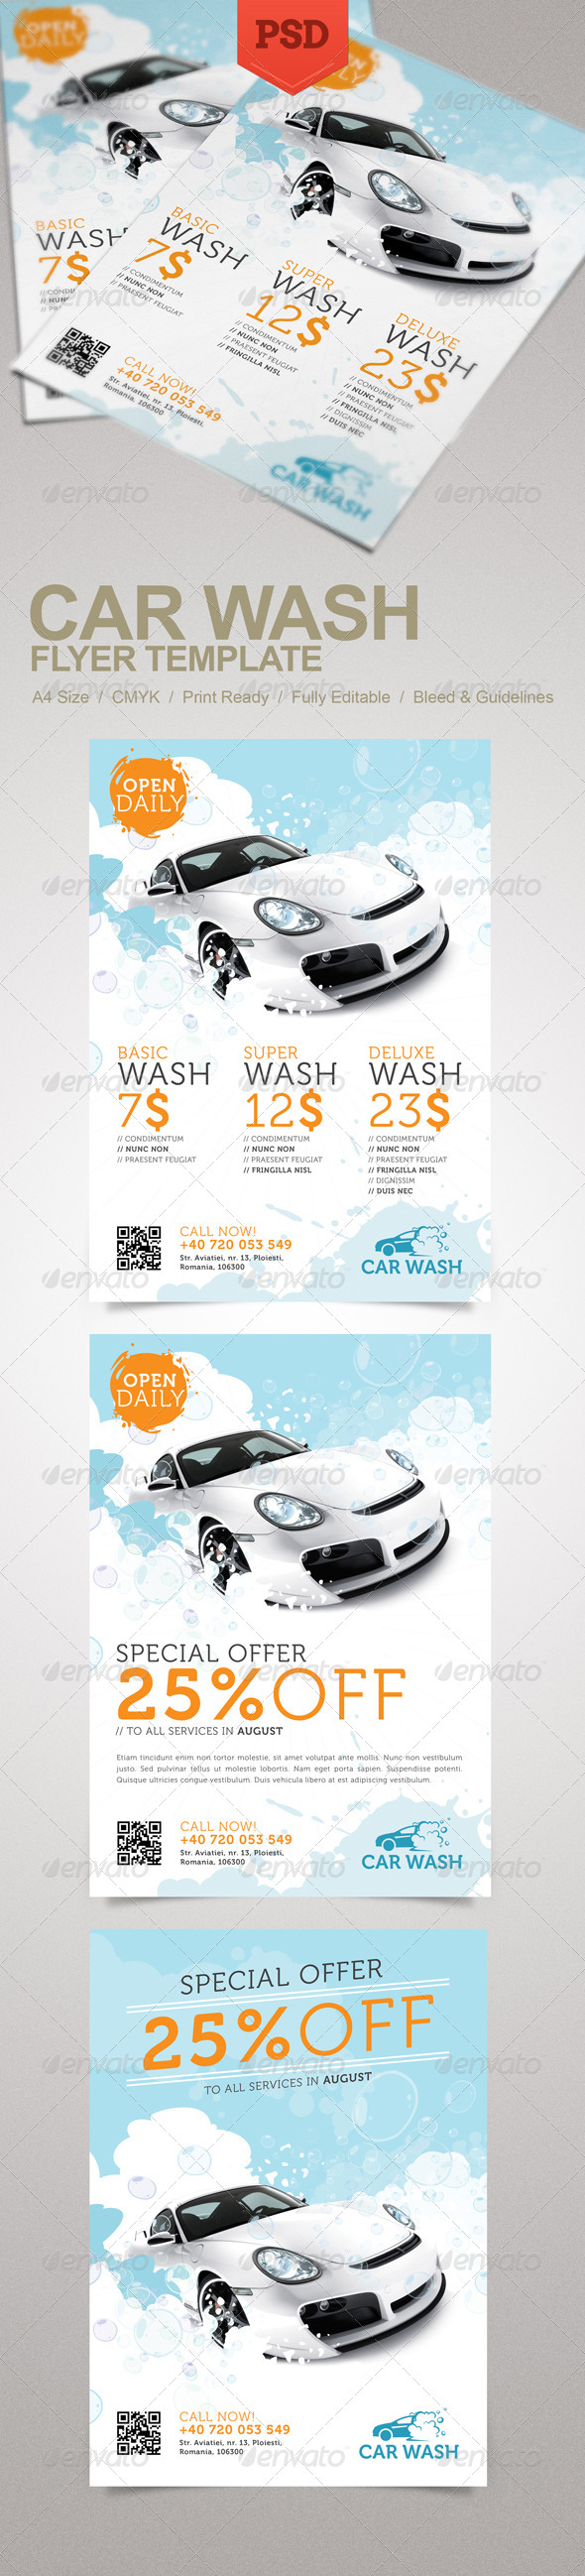 Car wash flyer psd for automotive flyers hot girls wallpaper for Car wash tickets templates free